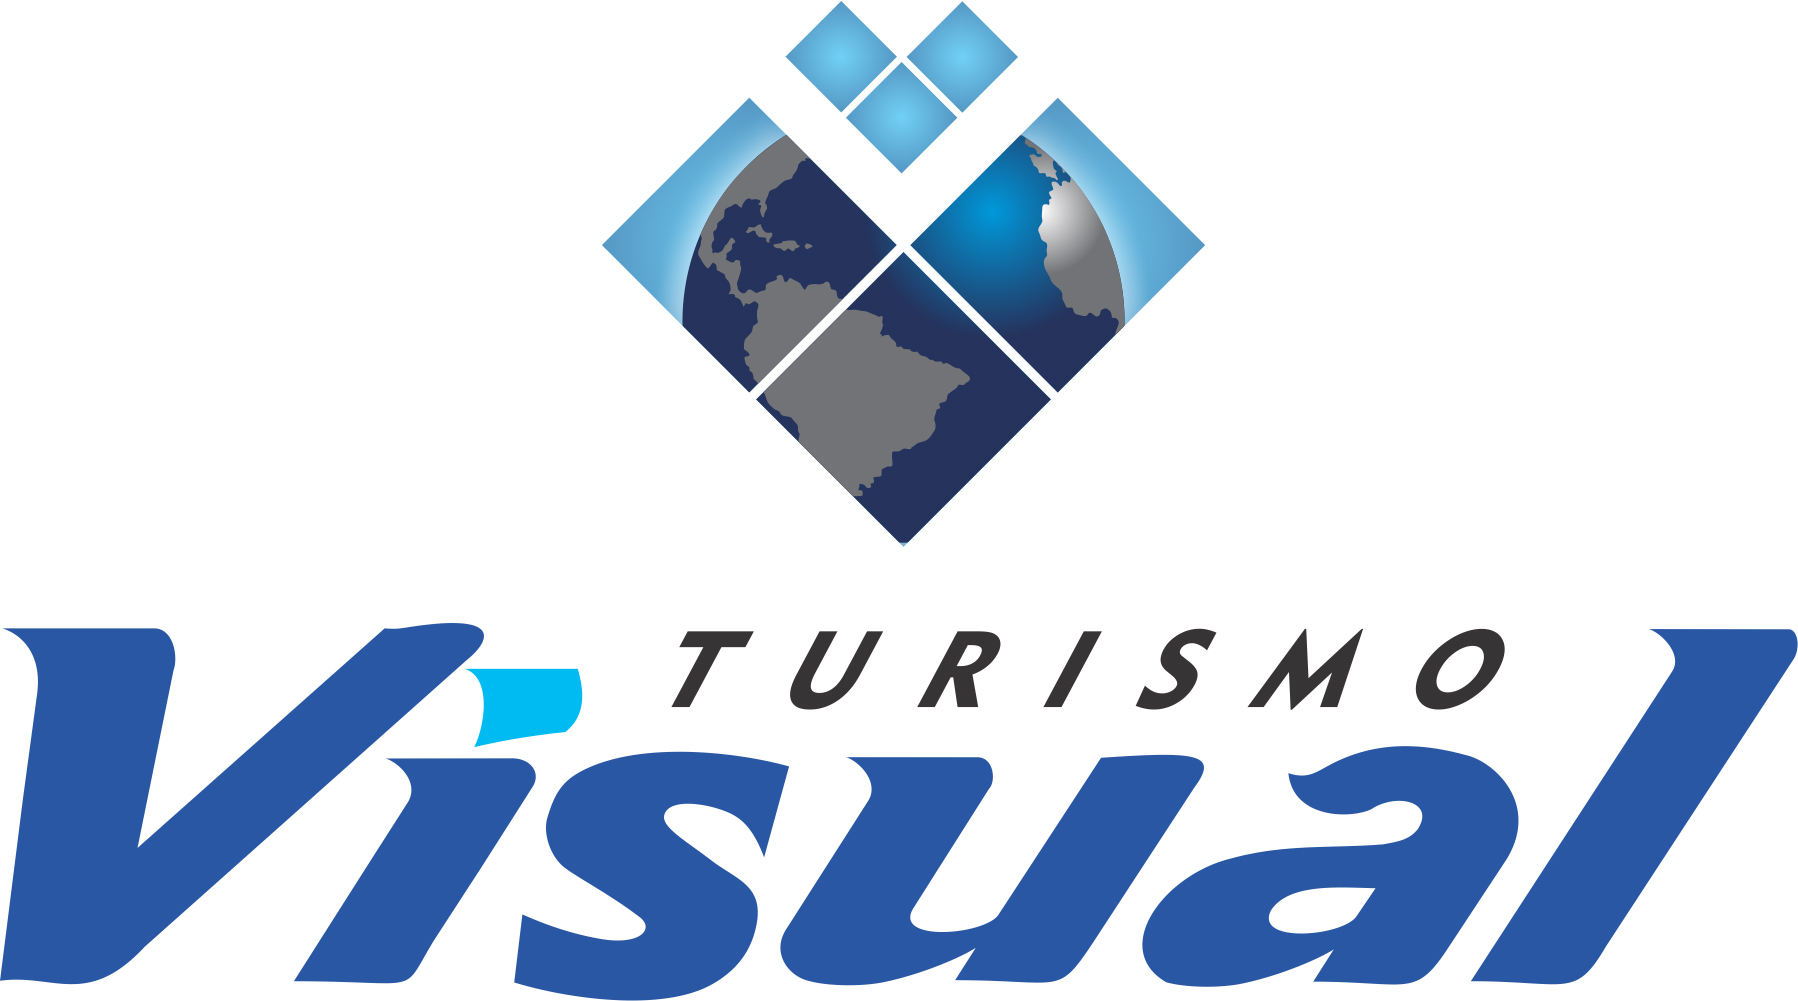 logo_visualturismo.jpg